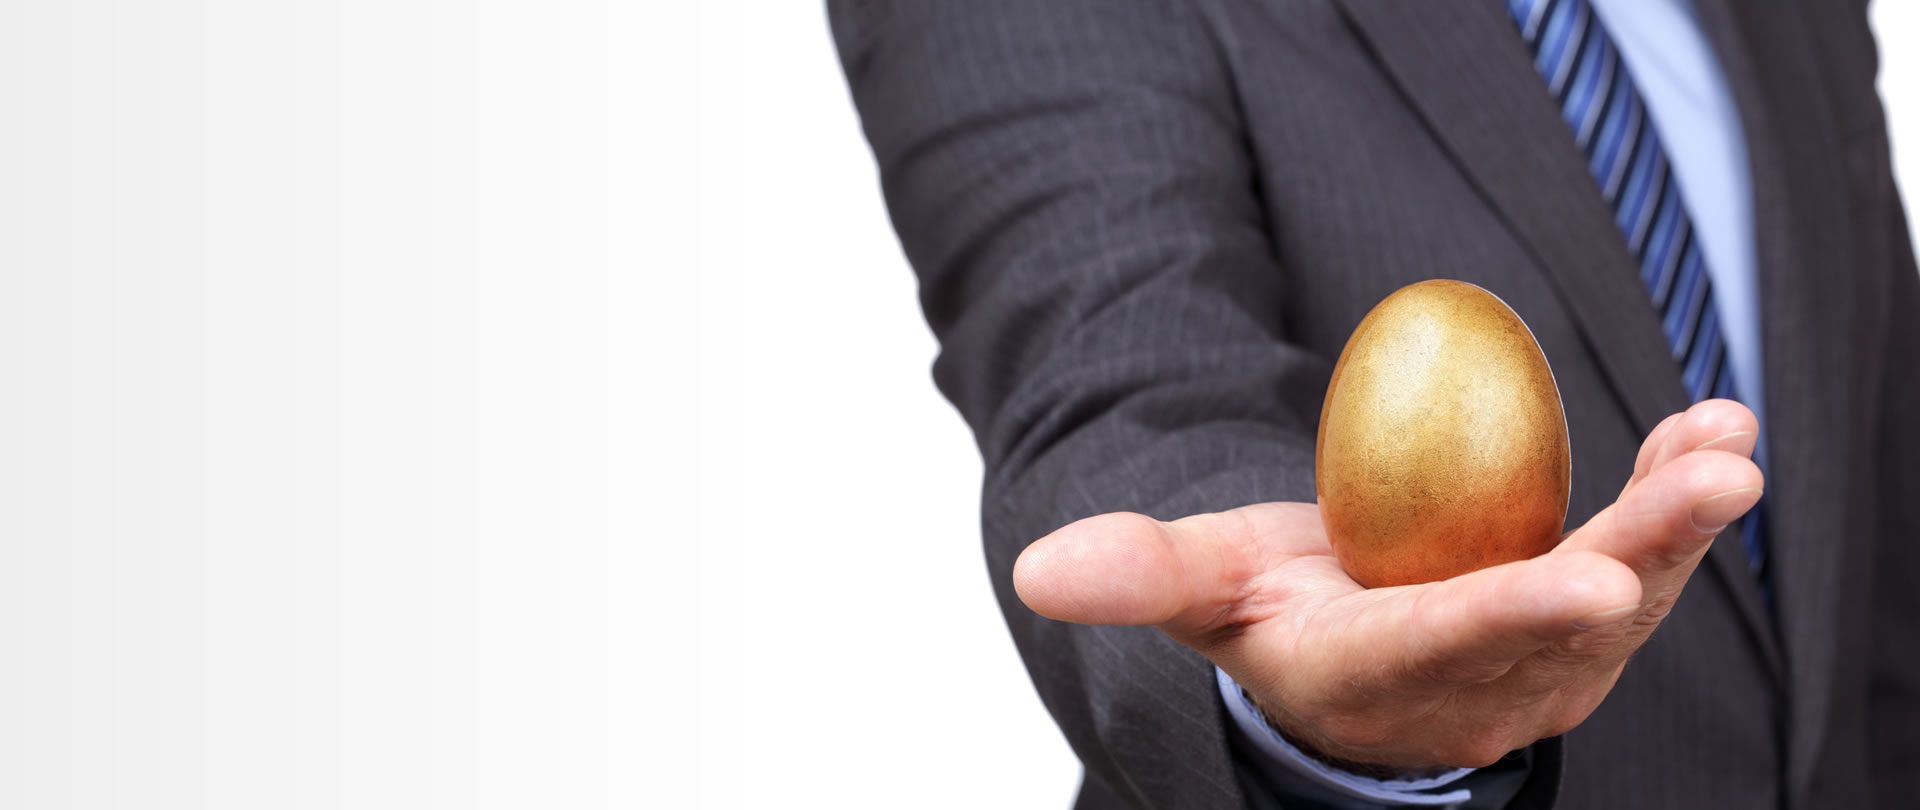 Email Marketing. Your Golden Egg!